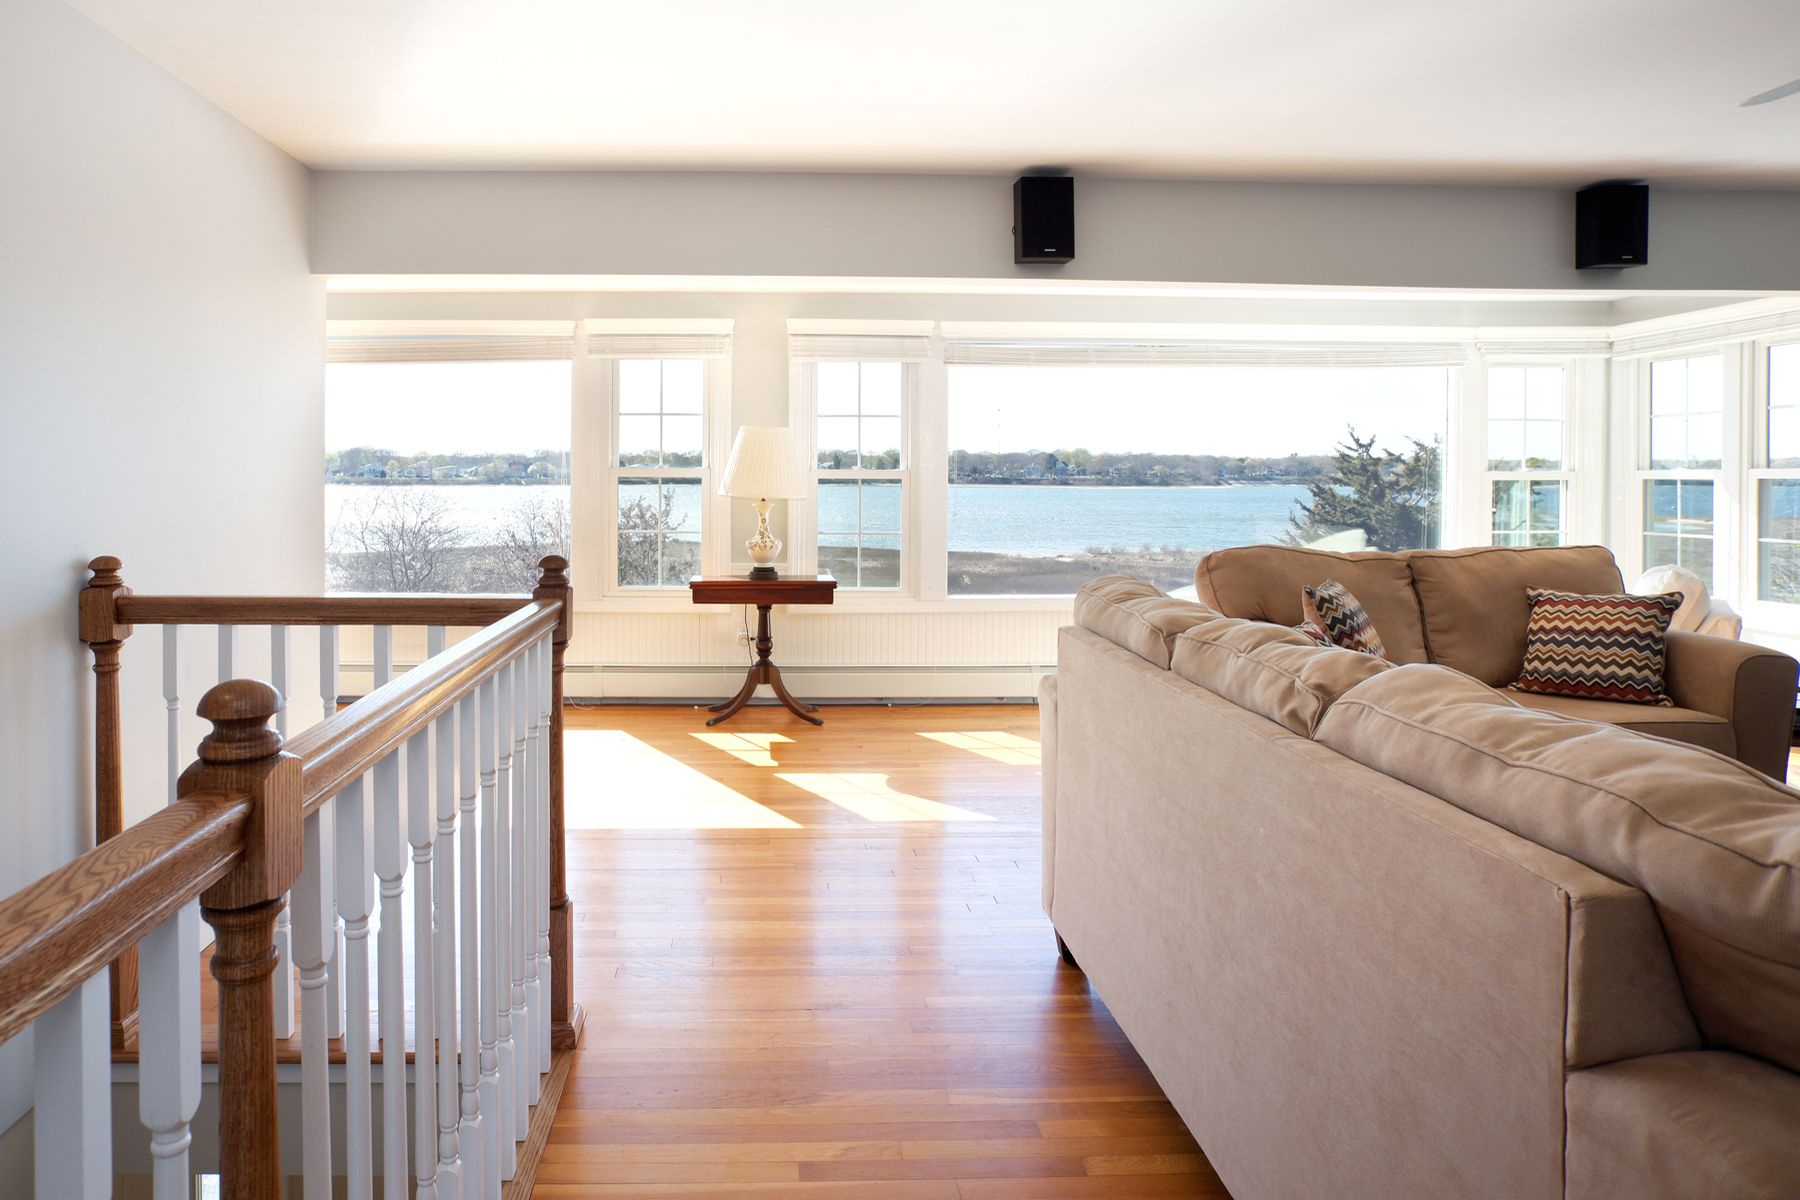 Single Family Home for Active at Magnificent Sunset and Water Views 6 Rawson Street Falmouth, Massachusetts 02536 United States